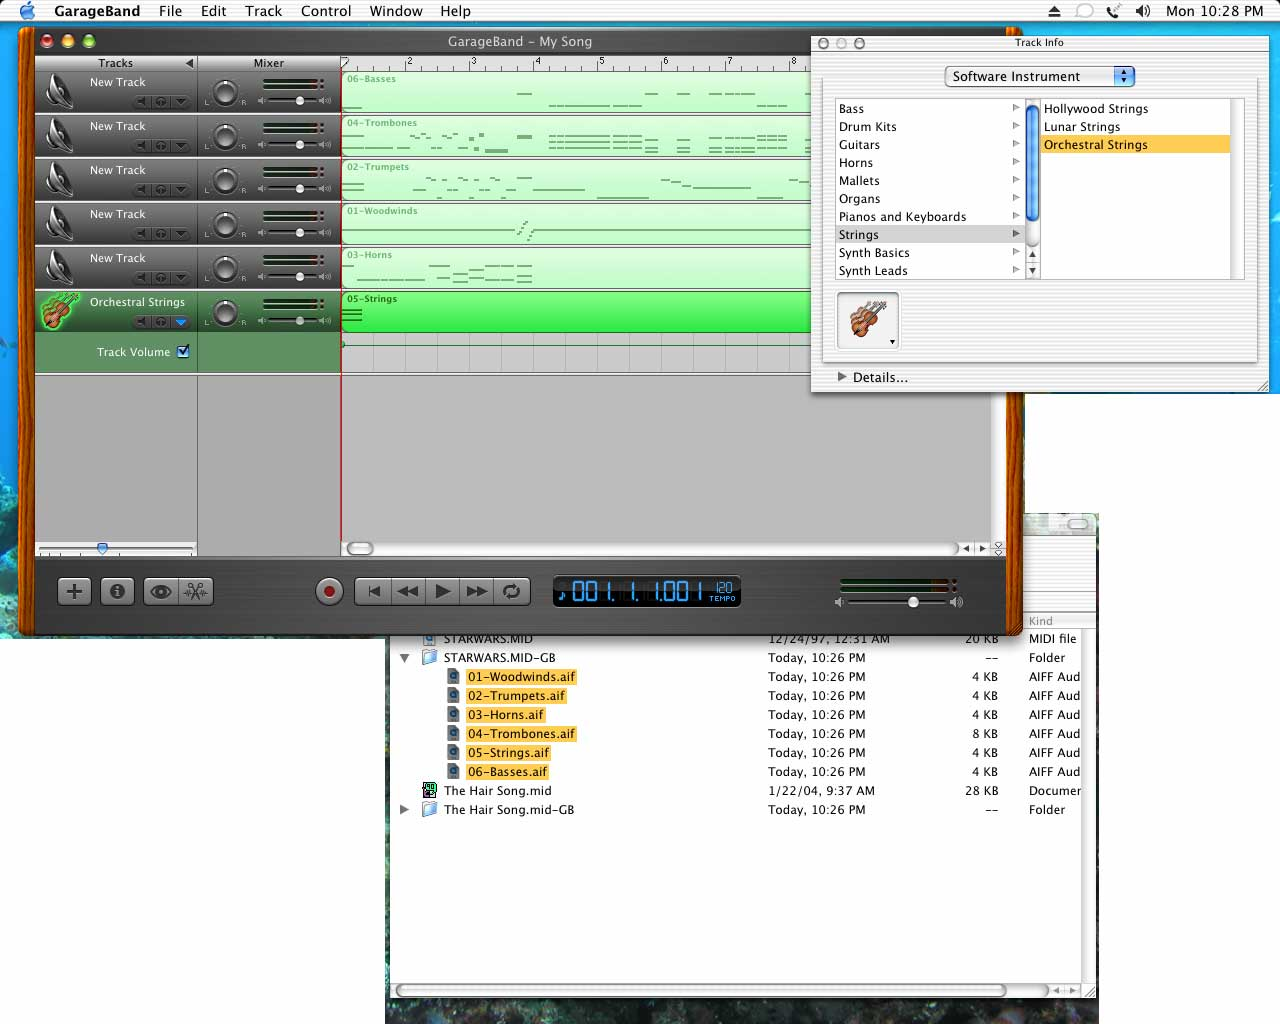 Dent Du Midi File Converter For Garageband 30 Ddm To Audio Level Meter Get Track Specific Volume Information From The Imported Tracks You Will Need Turn On Checkbox Each